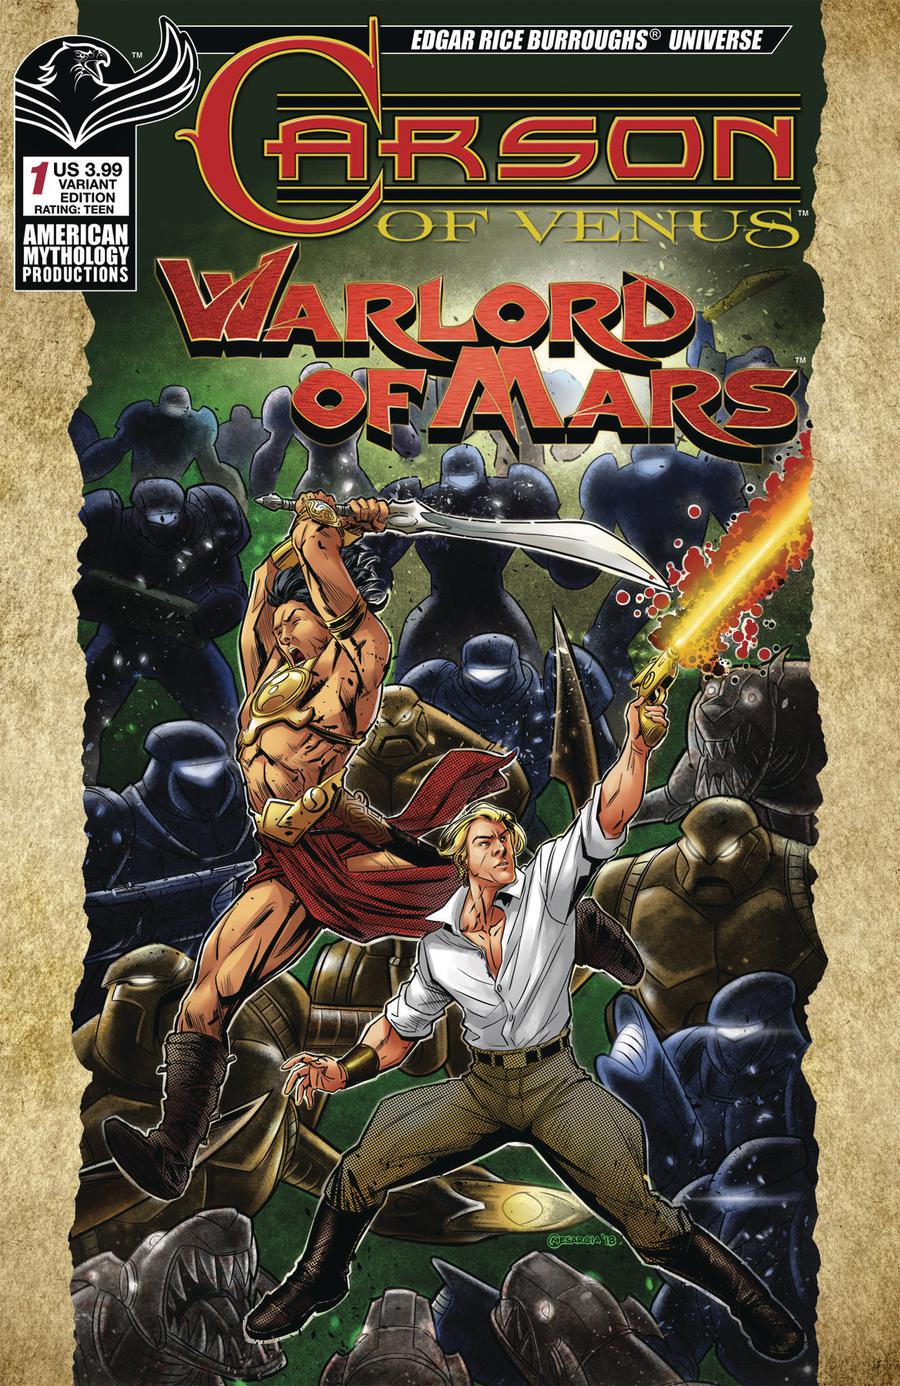 Carson Of Venus Warlord Of Mars #1 Cover B Variant Cyrus Mesarcia Warriors Cover